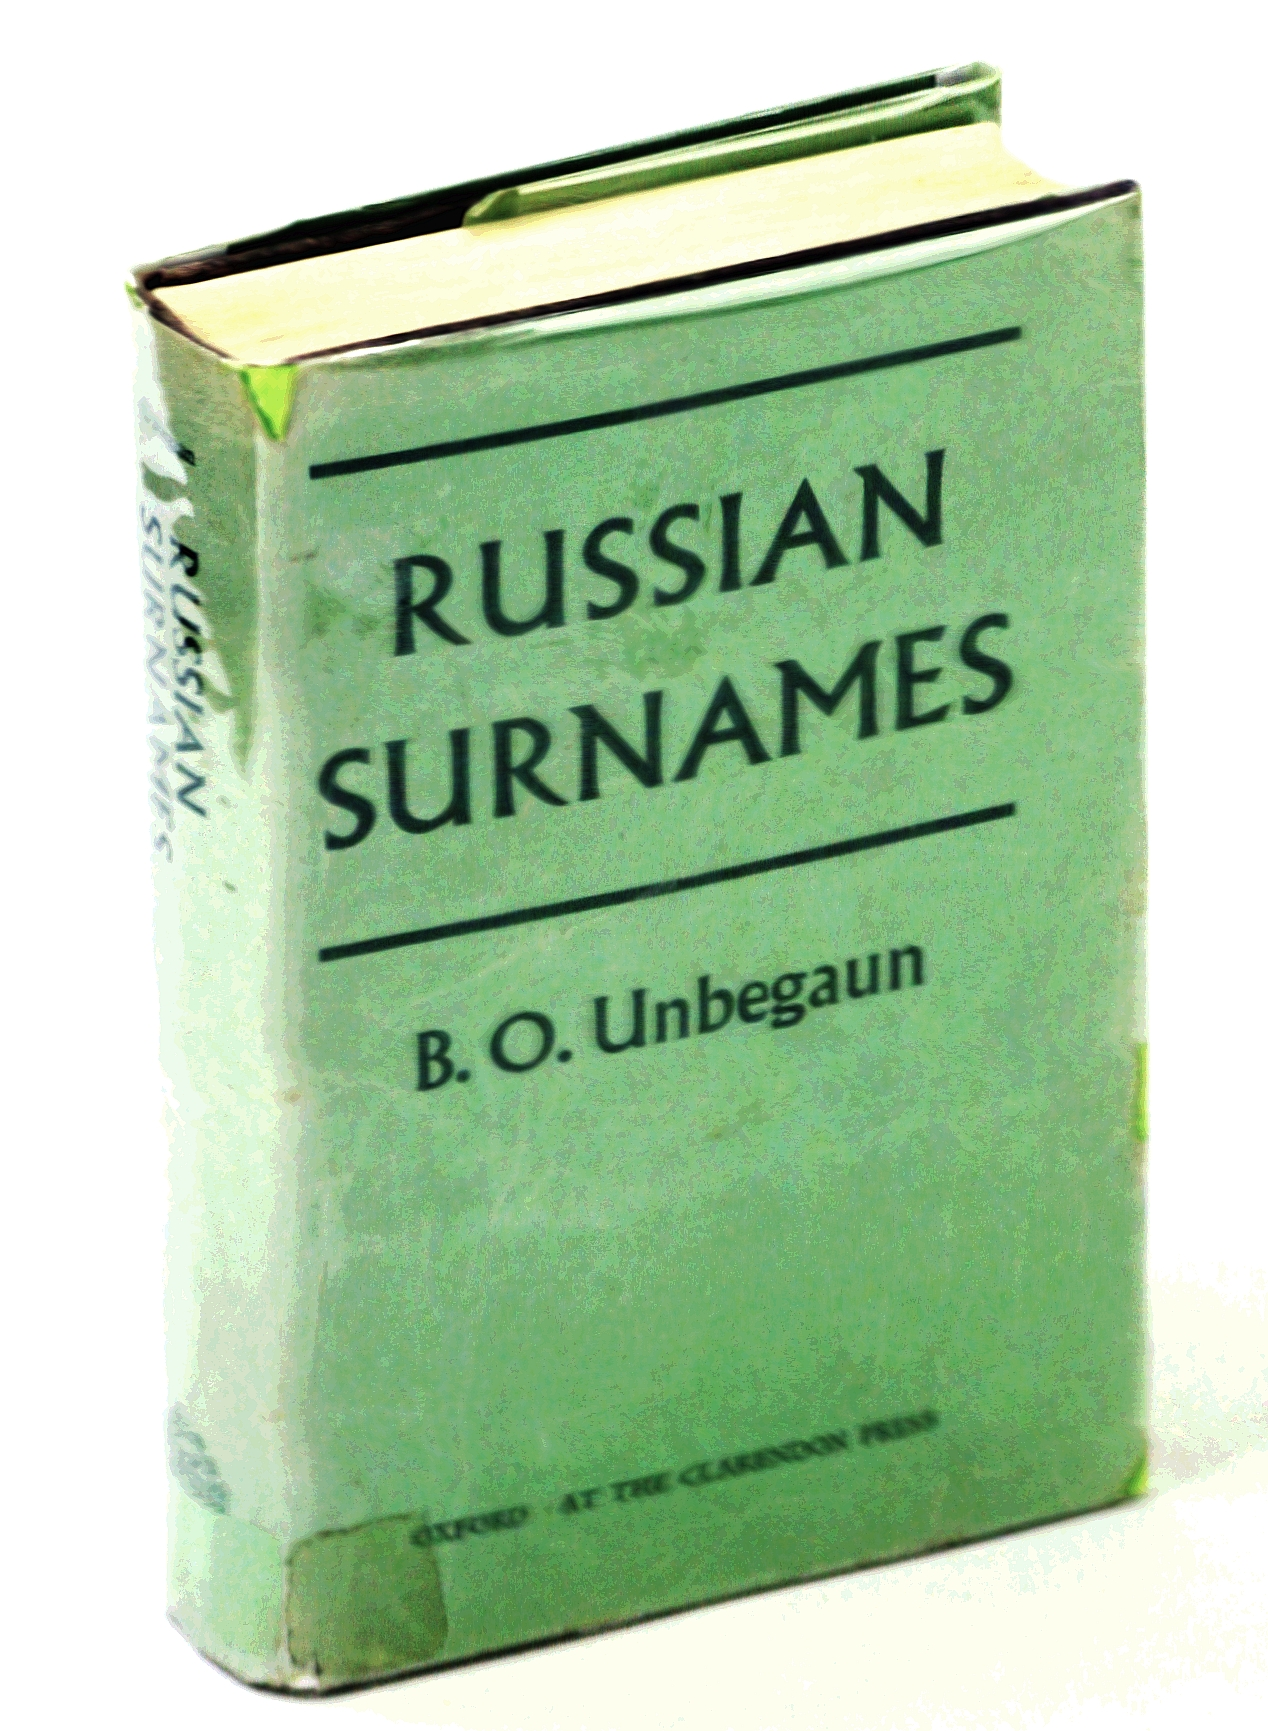 Image for Russian surnames